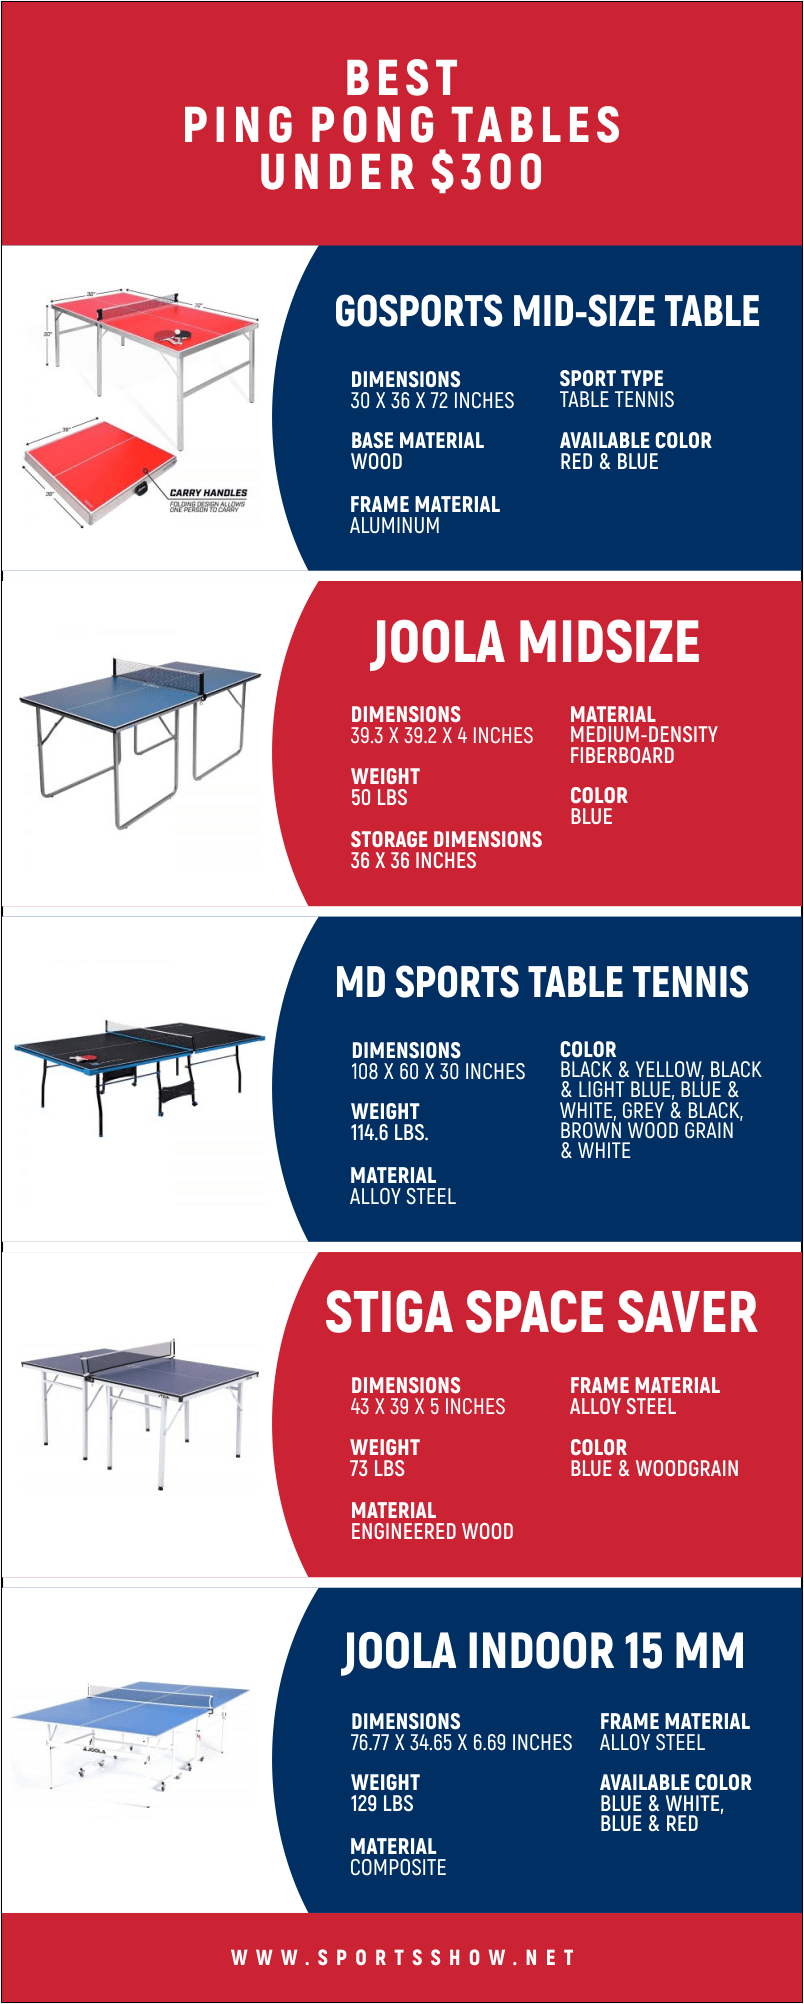 Best Ping Pong Tables Under $300 - Infographic